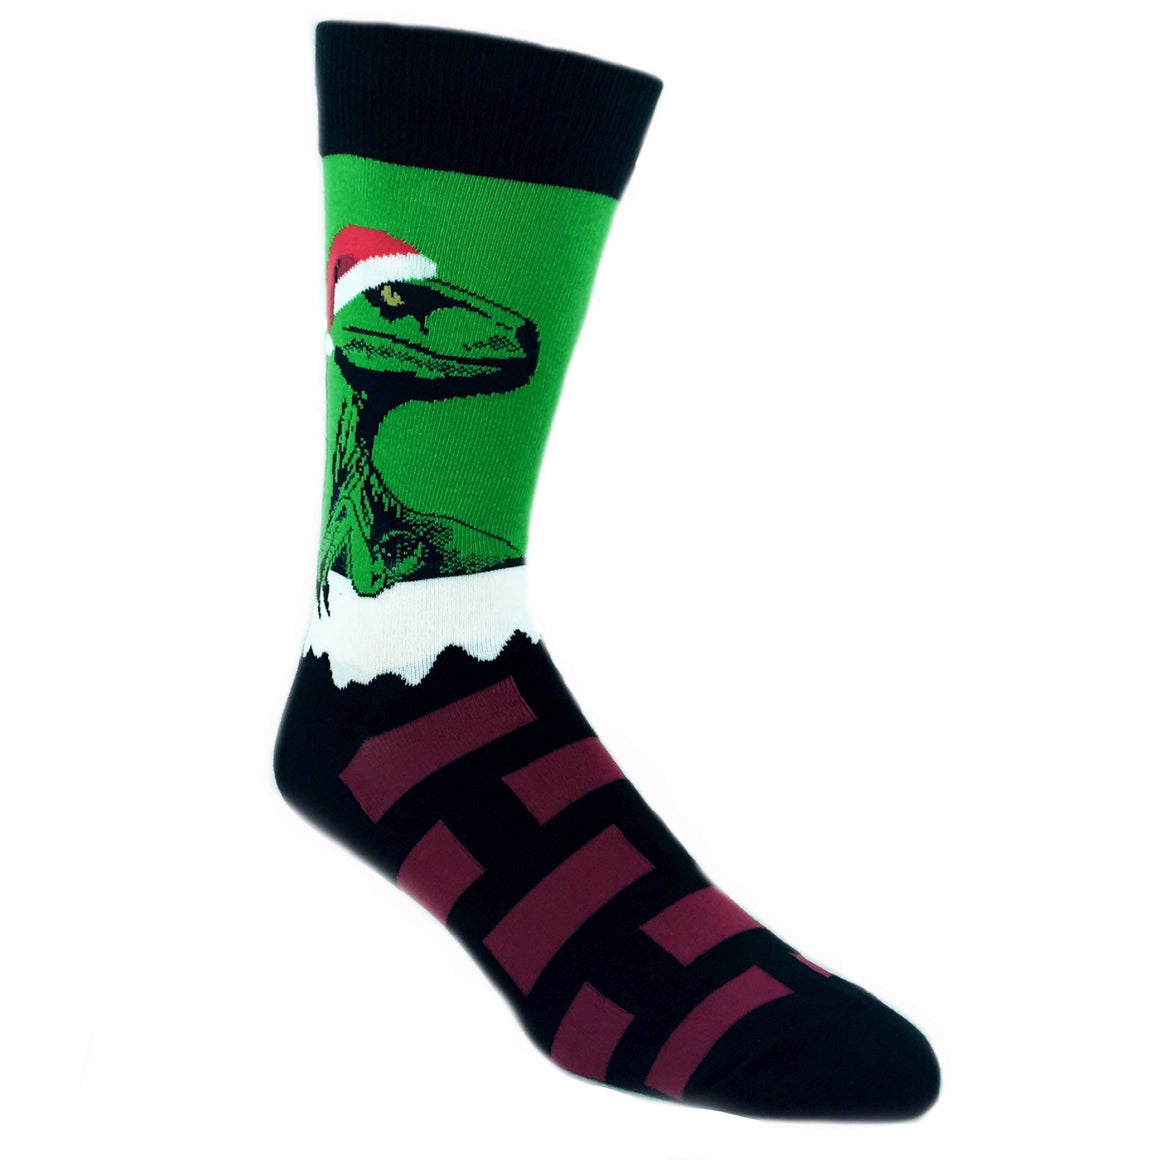 Raptor Claus Christmas Socks in Green by SockSmith